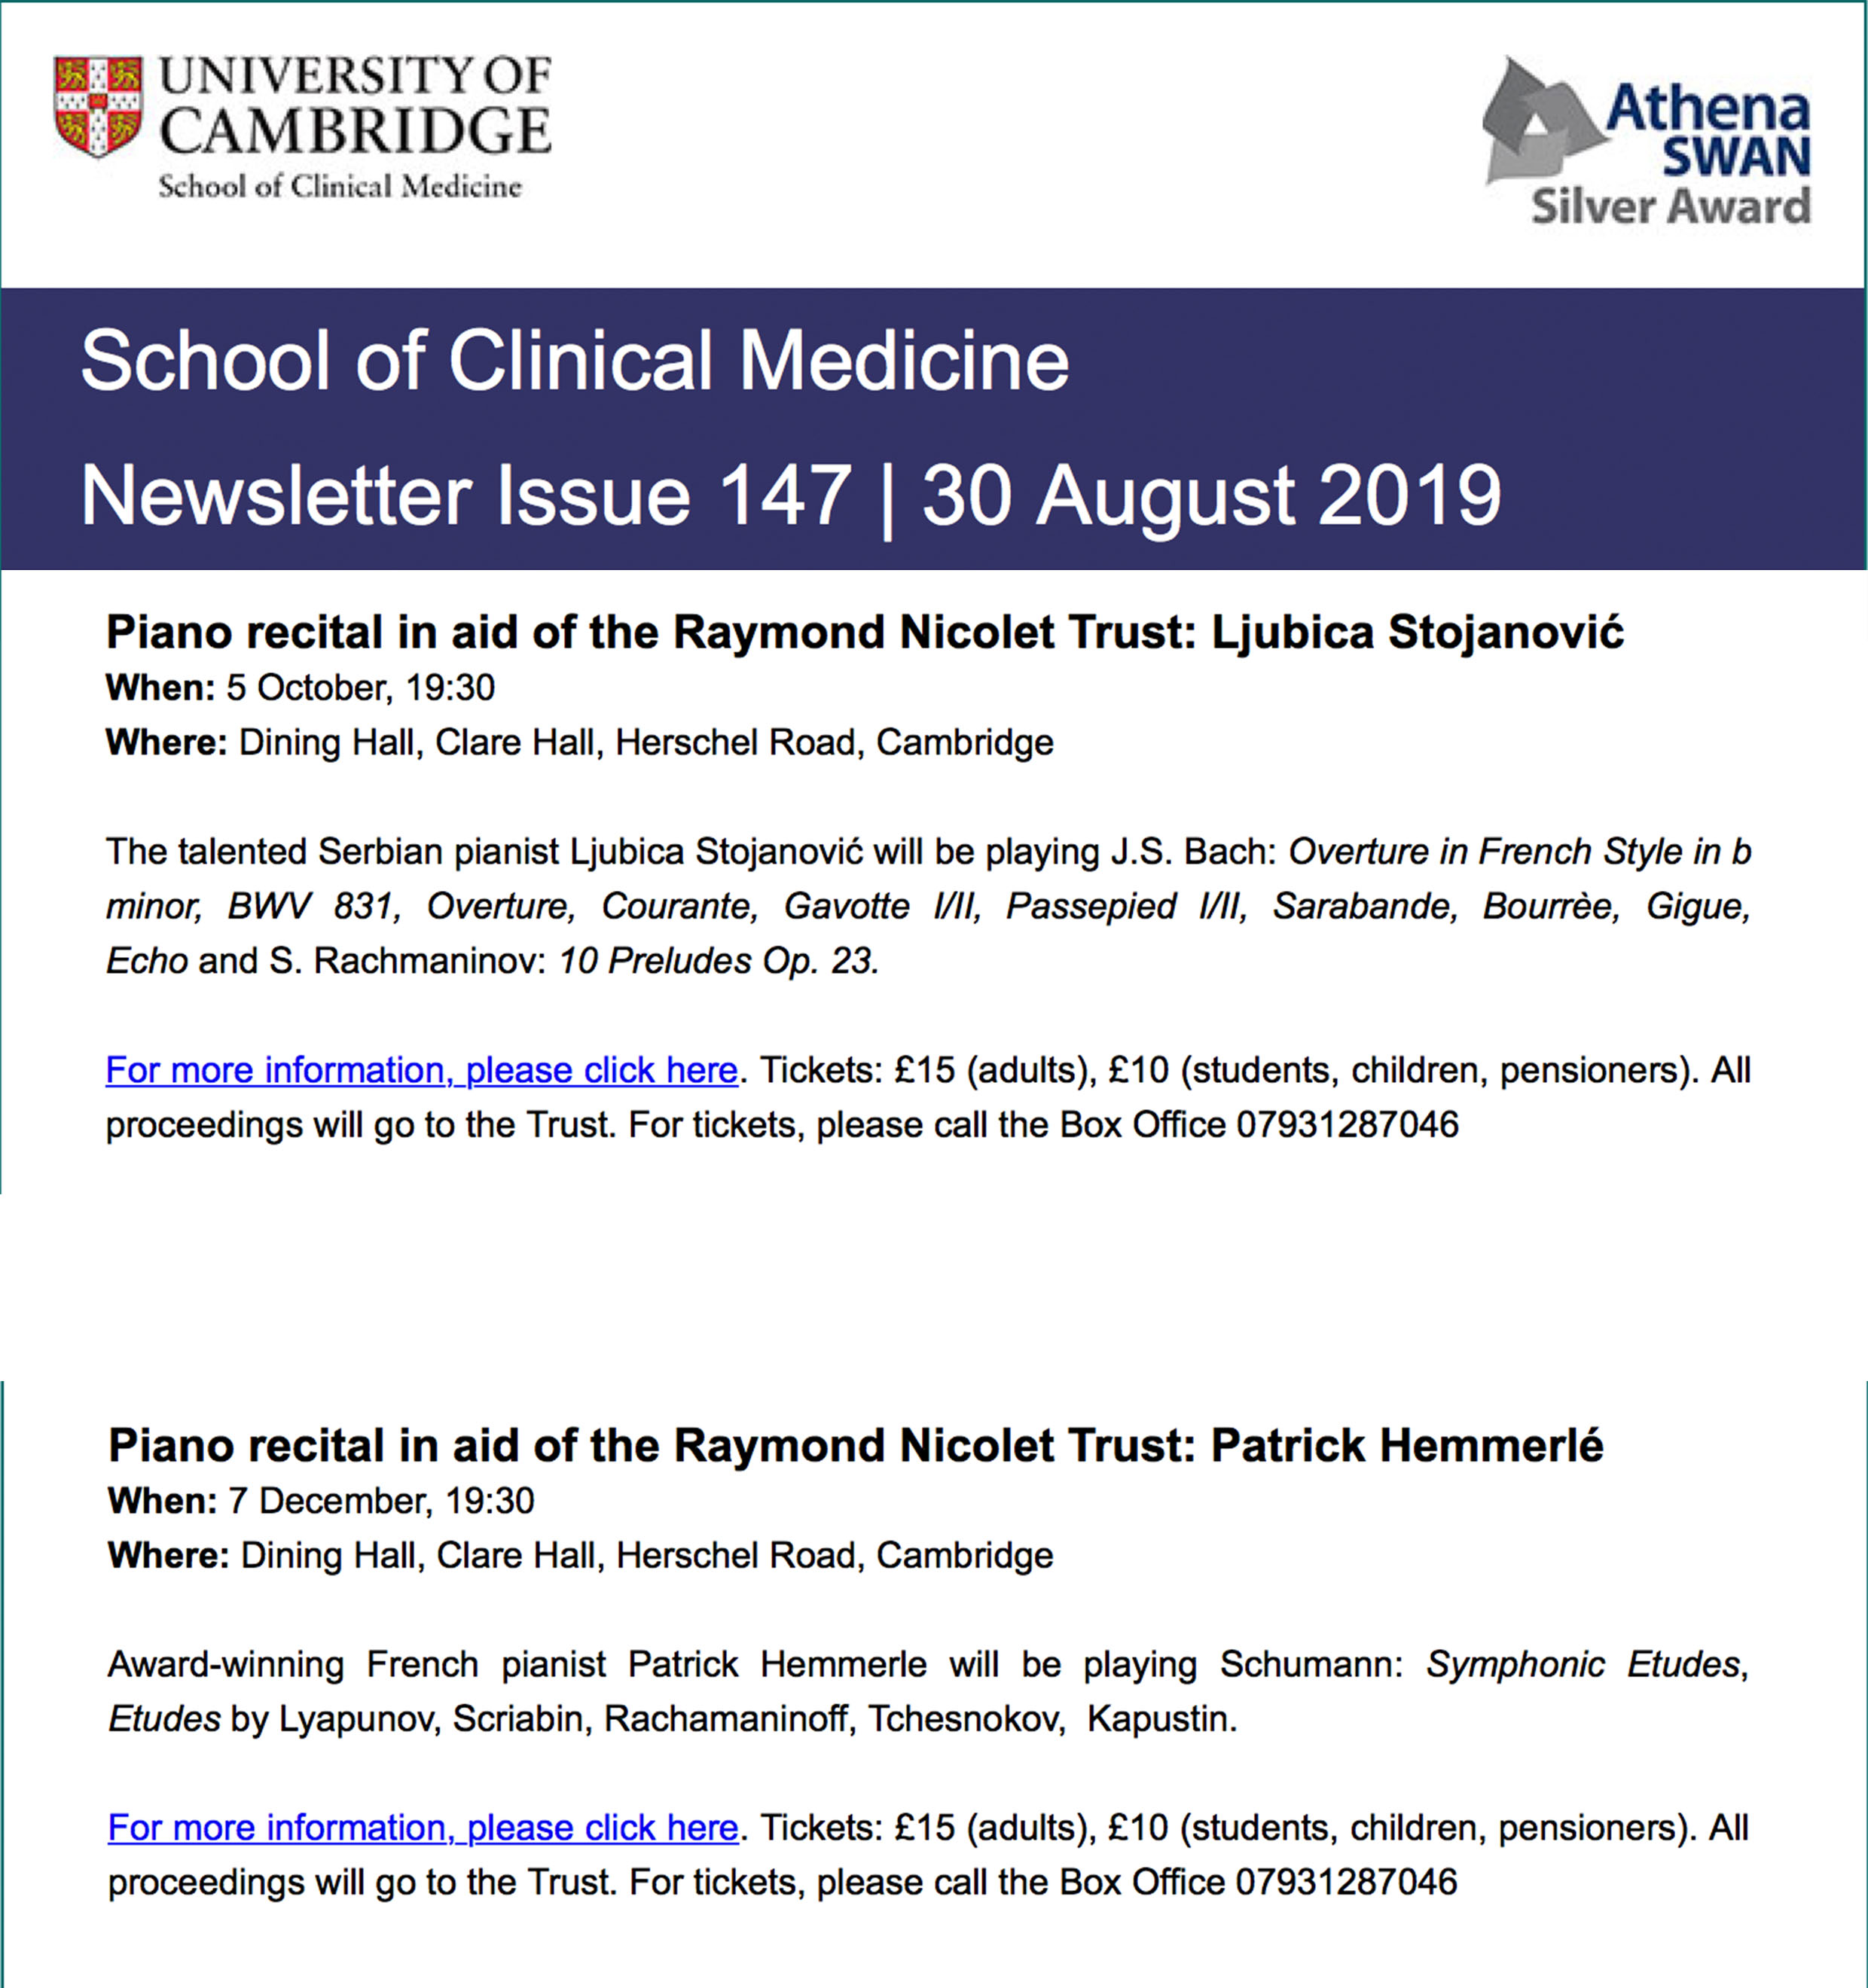 School of Clinical Medicine Newsletter, Issue 147, 30th August 2019.